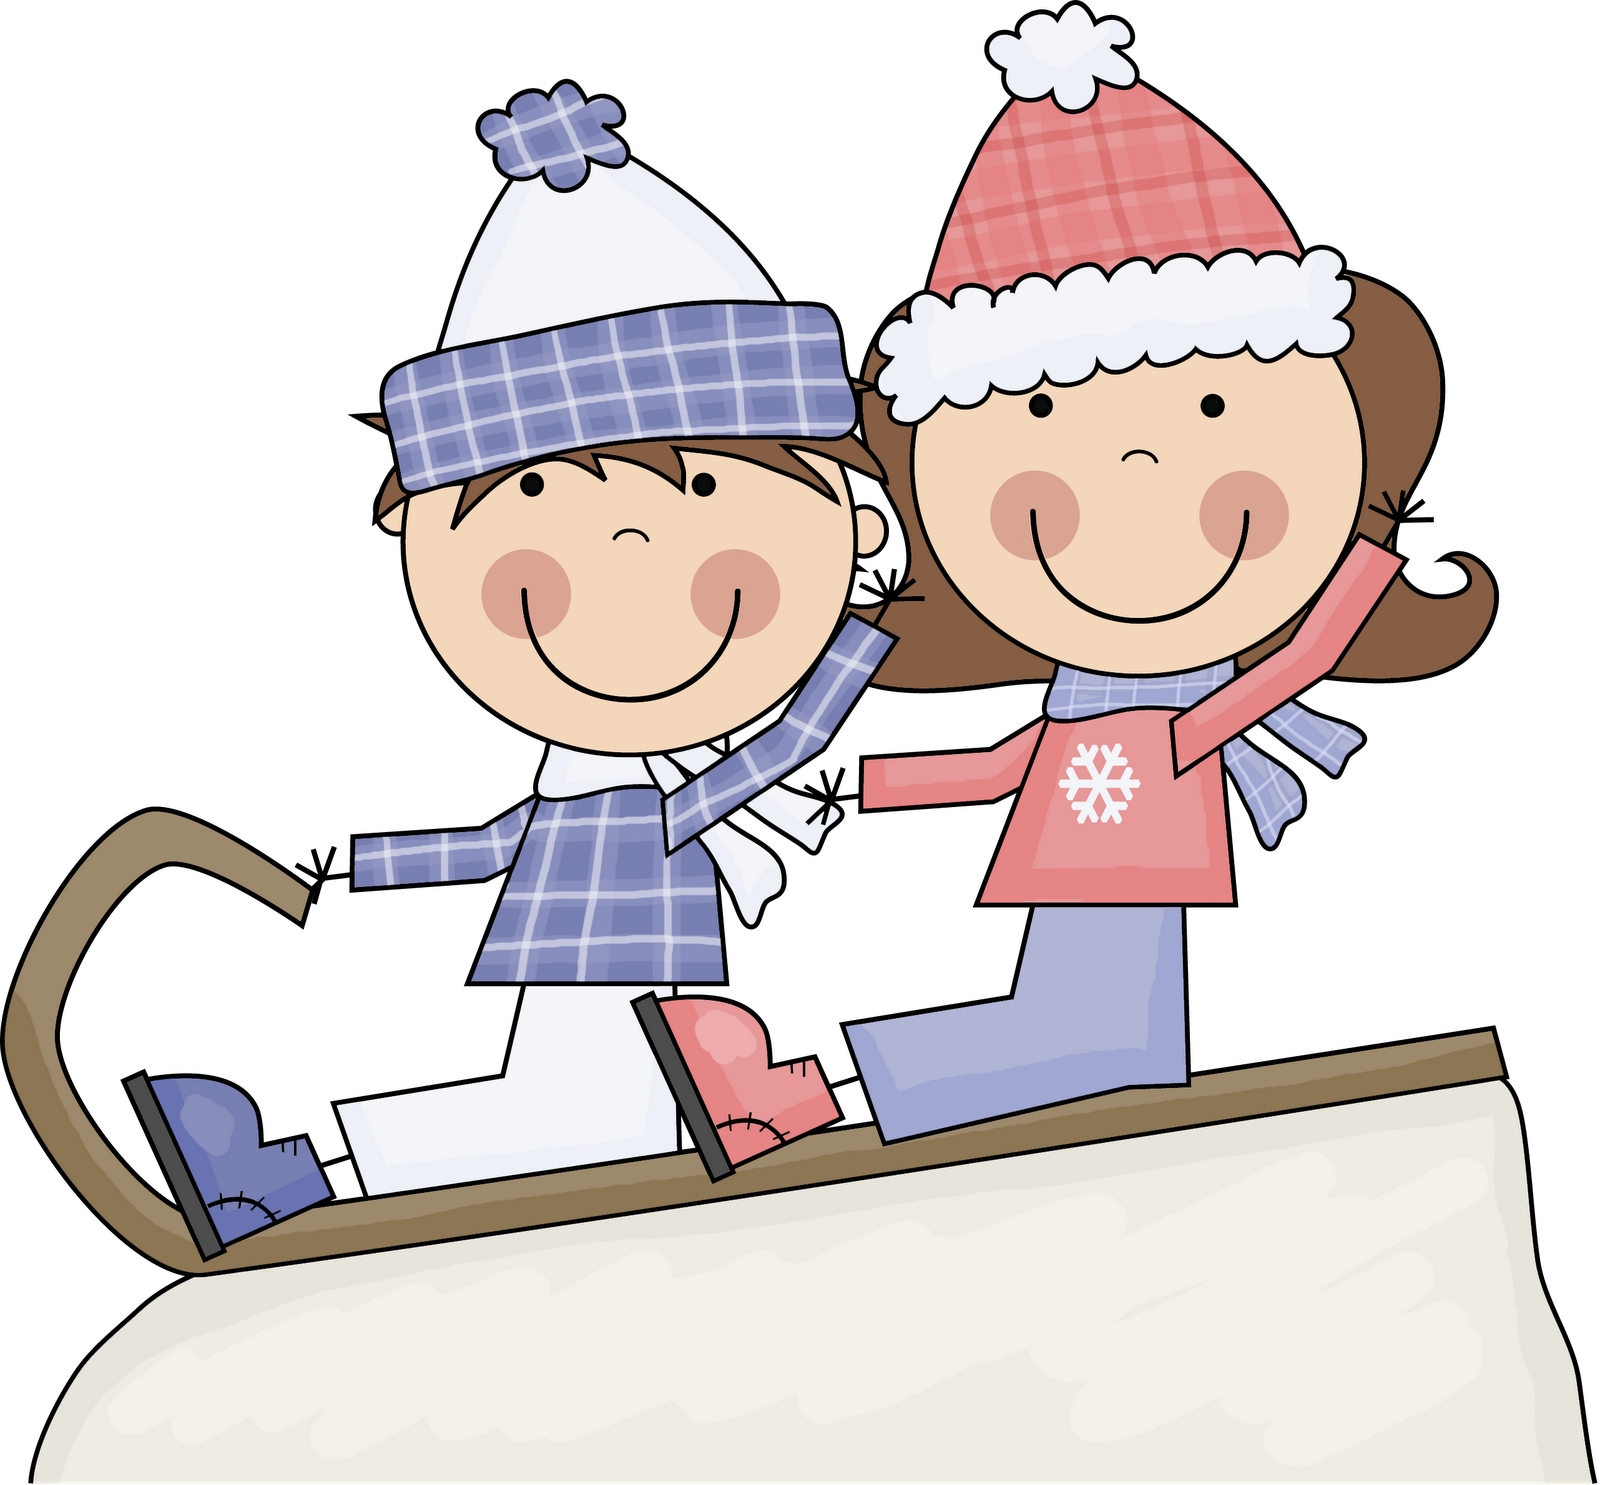 Kids playing in snow clipart clip art.